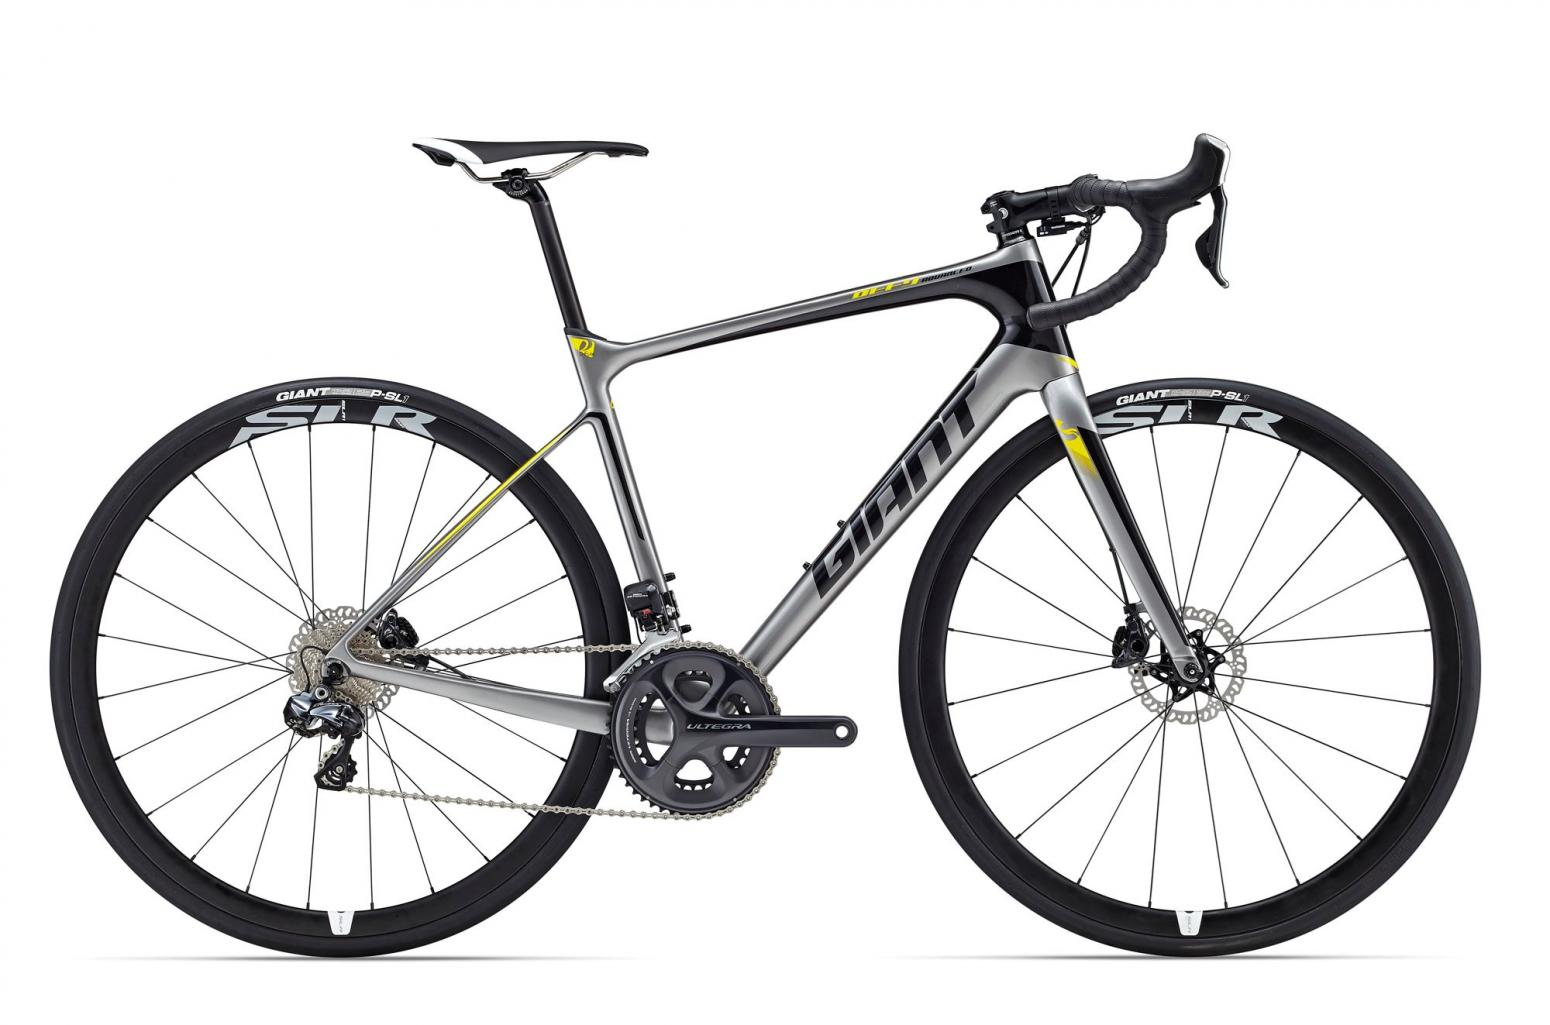 Giant Rennvelo Endurance Defy Advanced Pro 1 2016